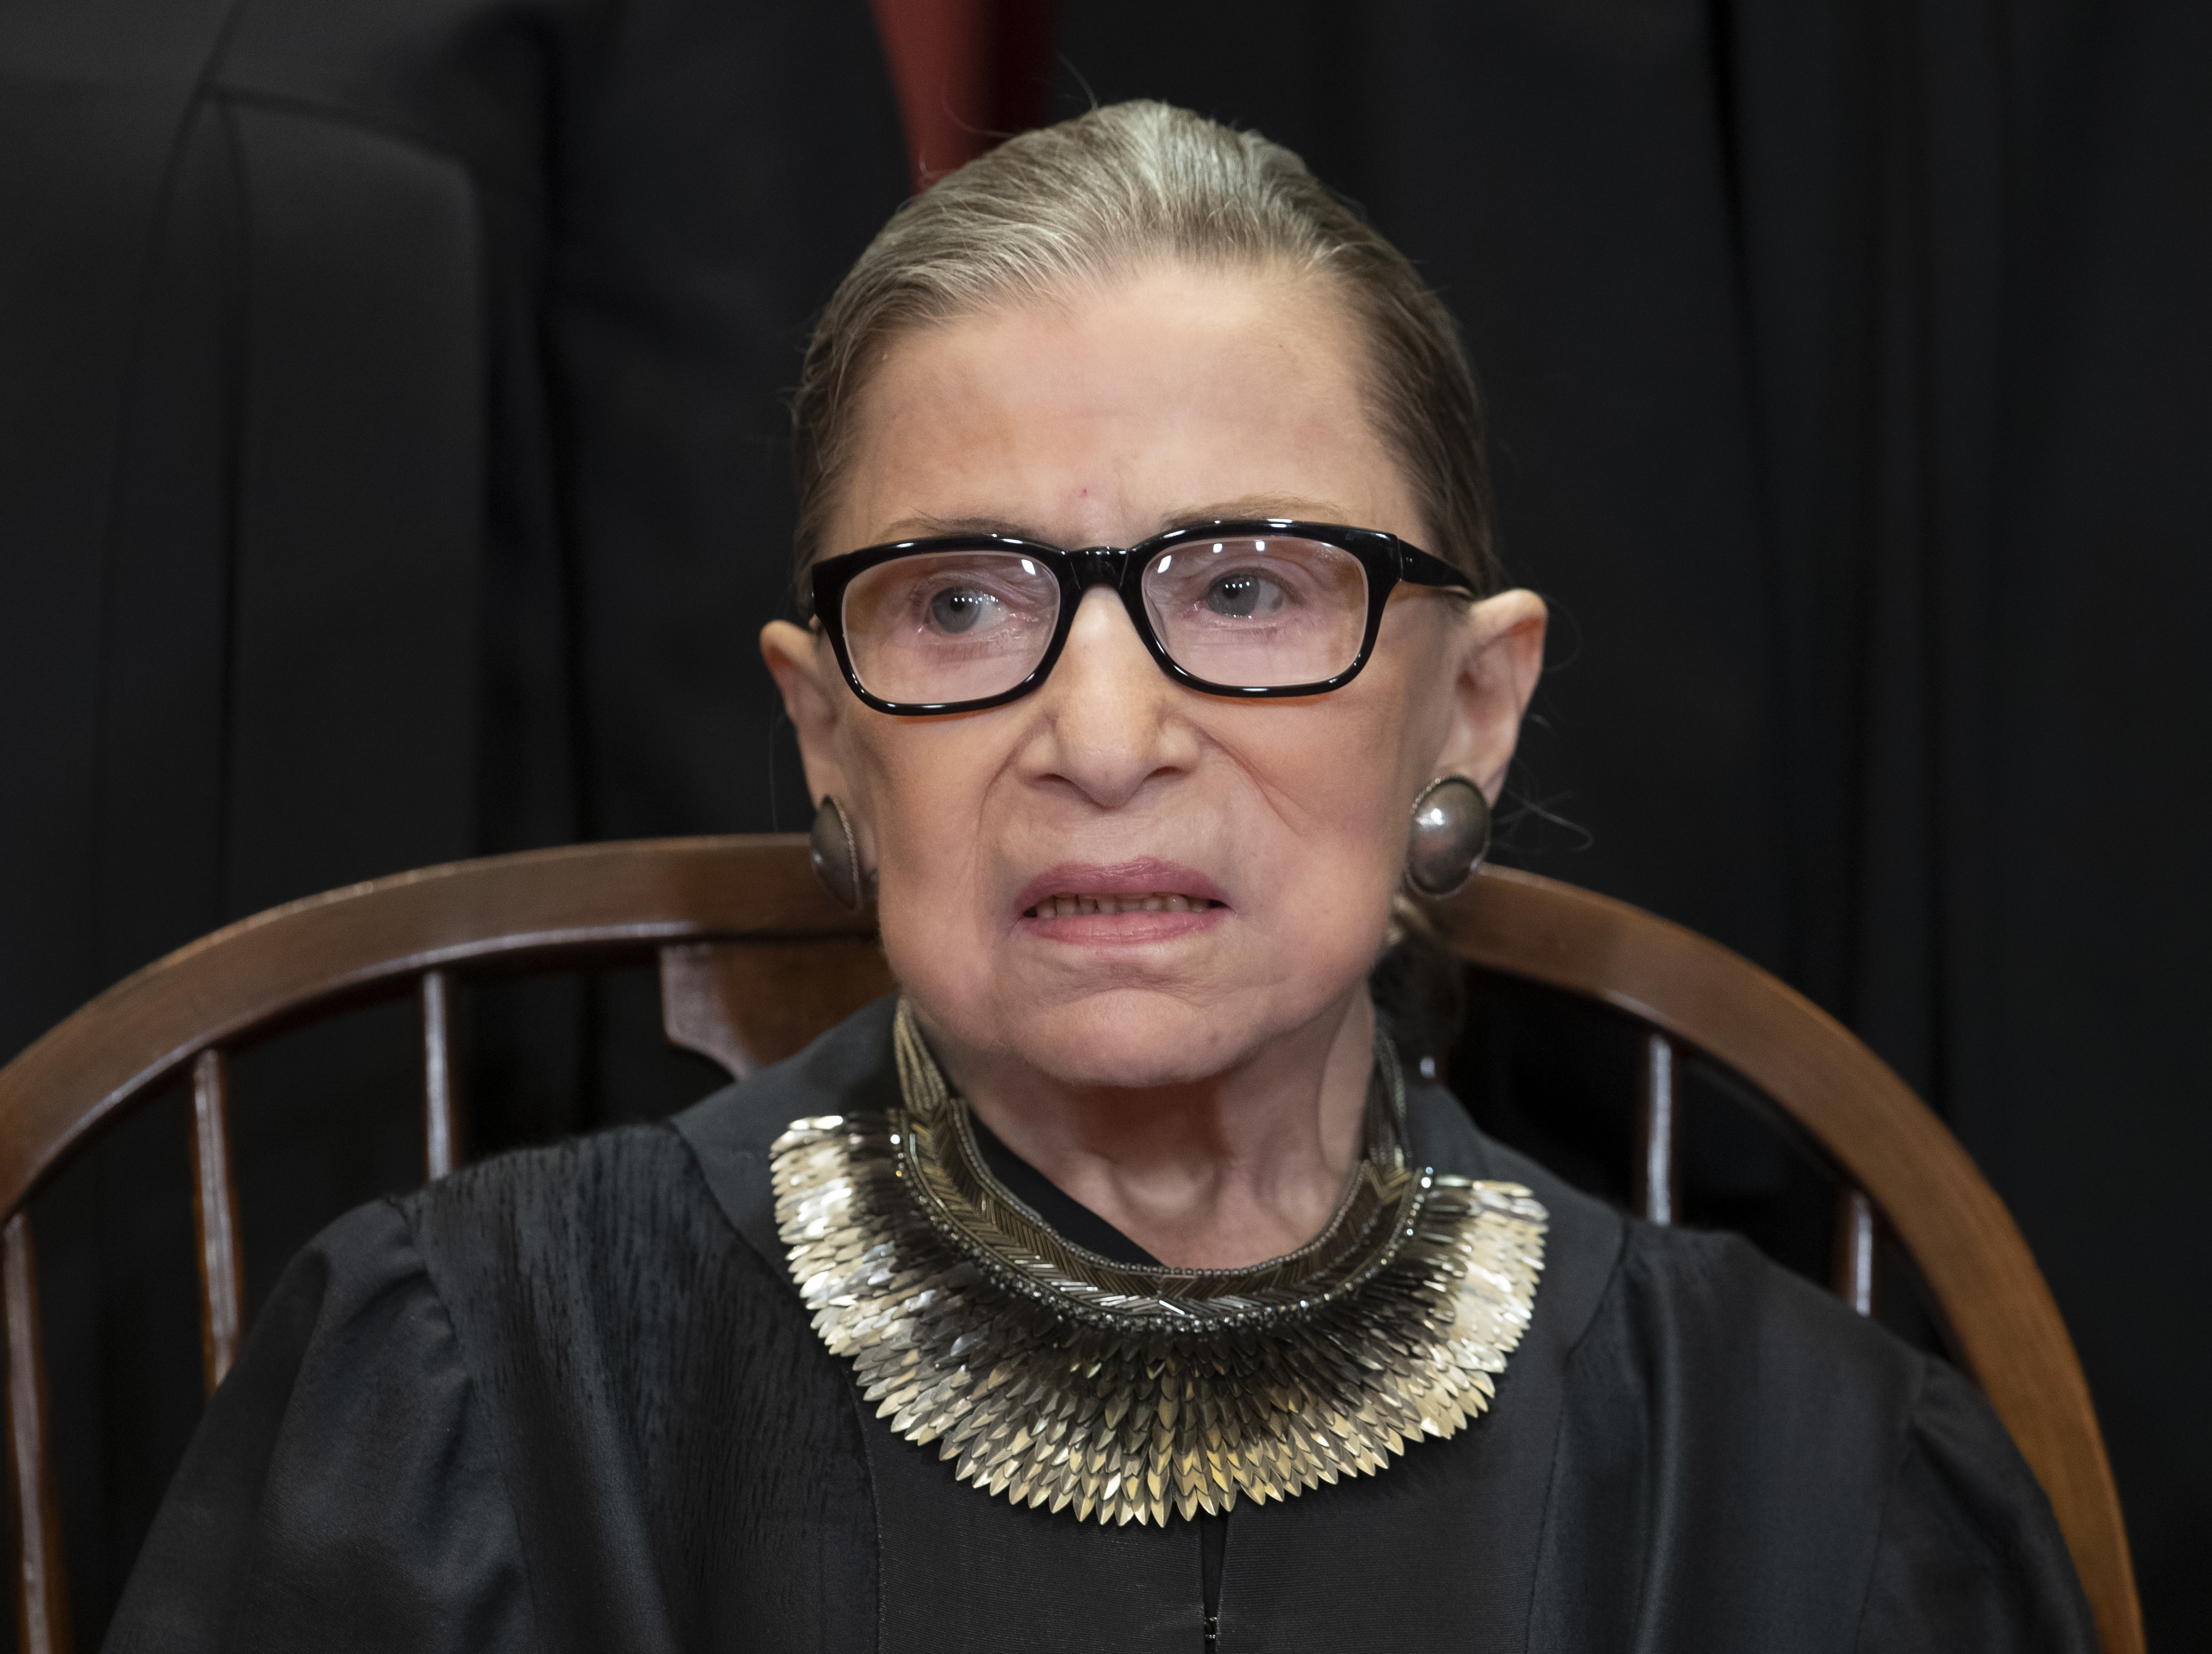 Ruth Bader Ginsburg hints at sharp divide over court's high-profile pending cases